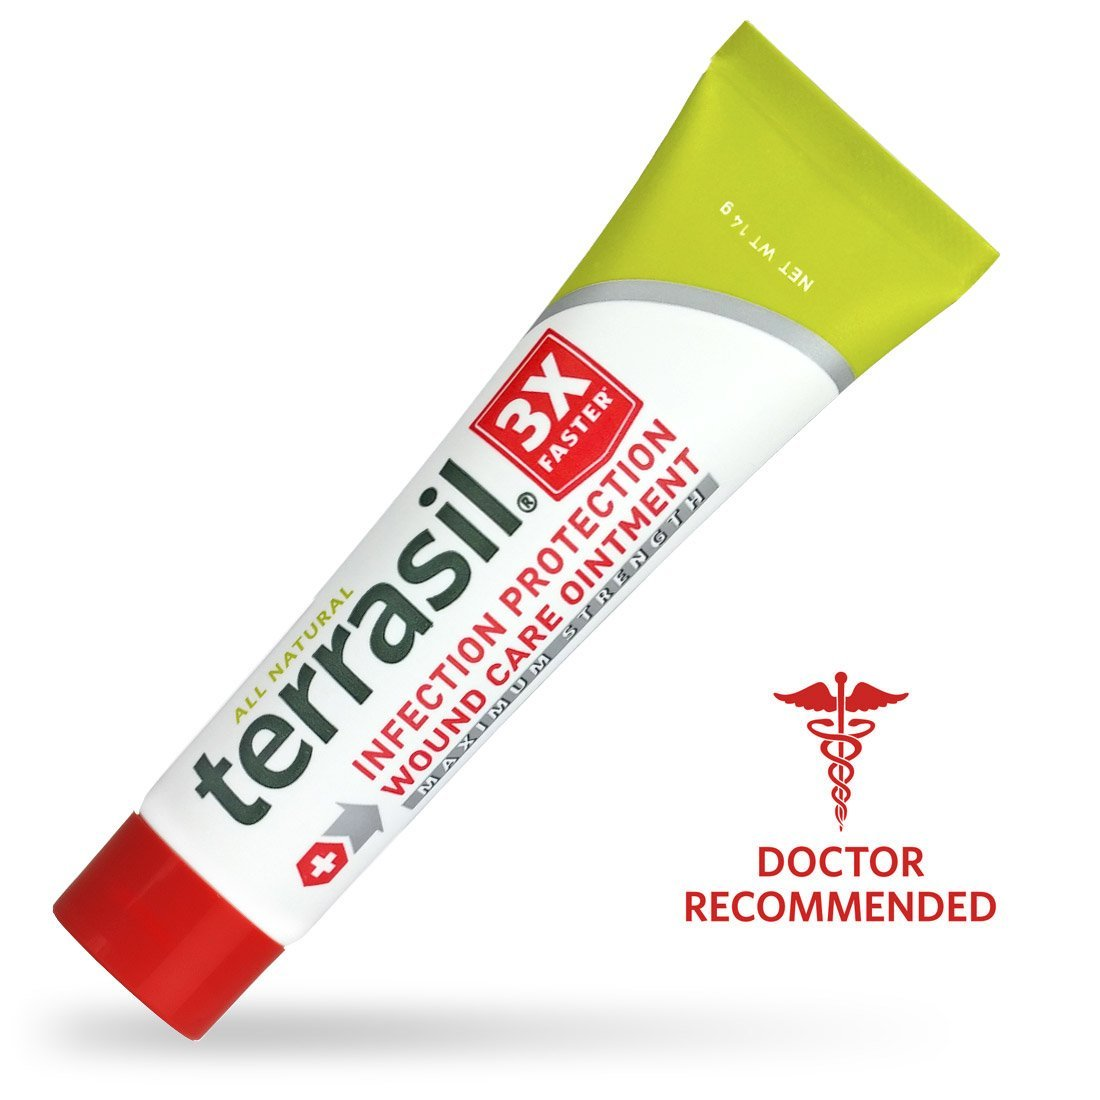 Terrasil® Wound Care MAX - 3X Faster Healing, Dr. Recommended, 100% Guaranteed, Patented, Homeopathic infection bed & pressure sores diabetic wounds venous foot & leg ulcers cuts scrapes burns by Aidance Skincare & Topical Solutions